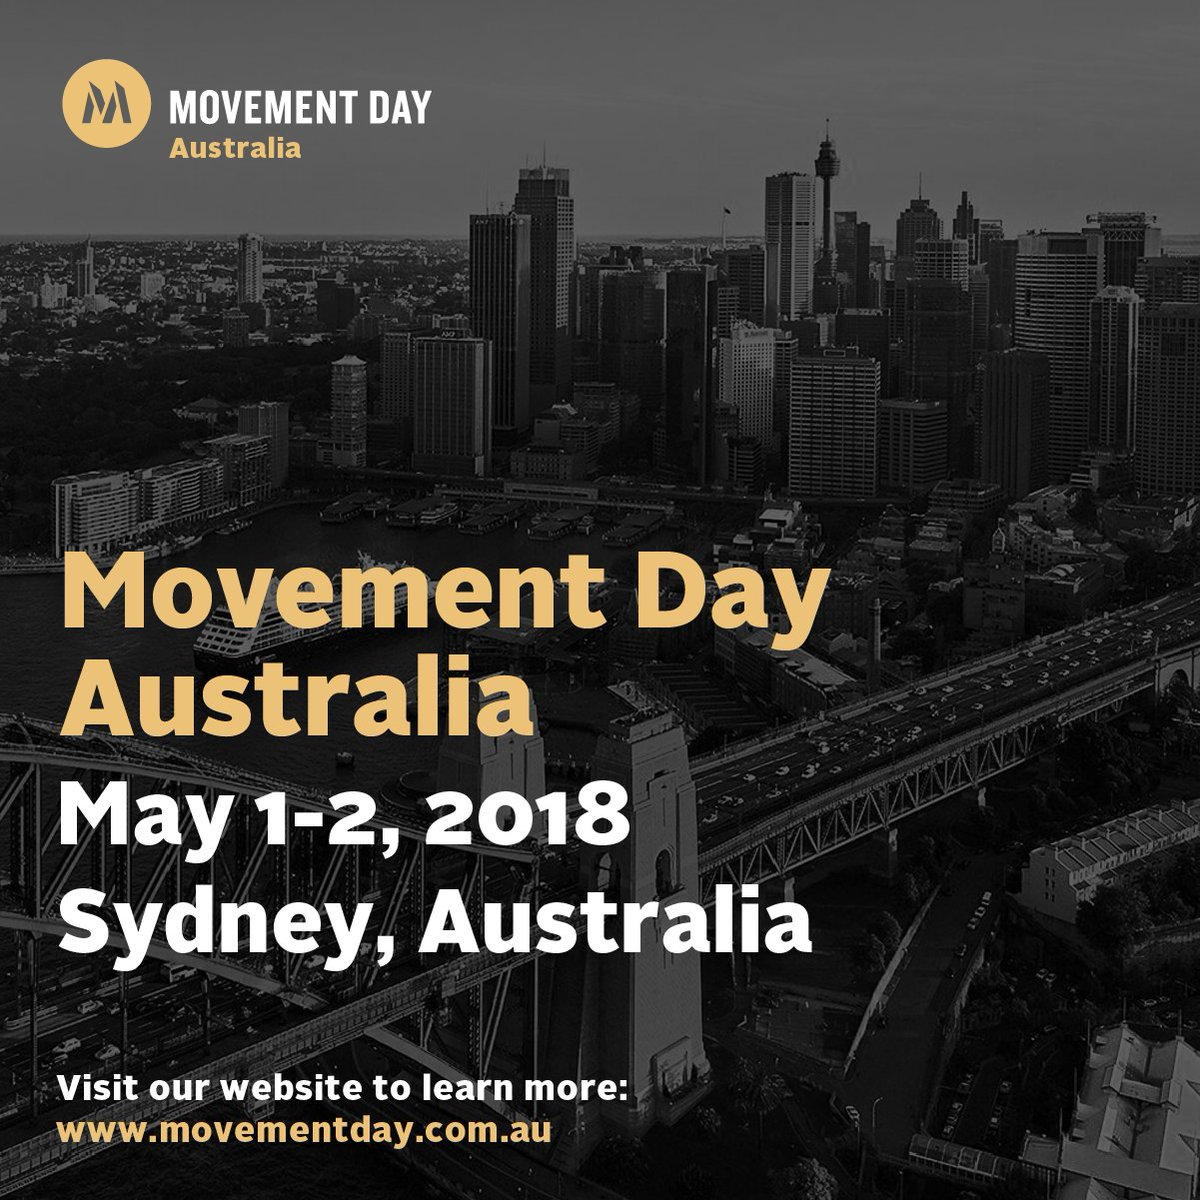 Movement Day on Twitter: